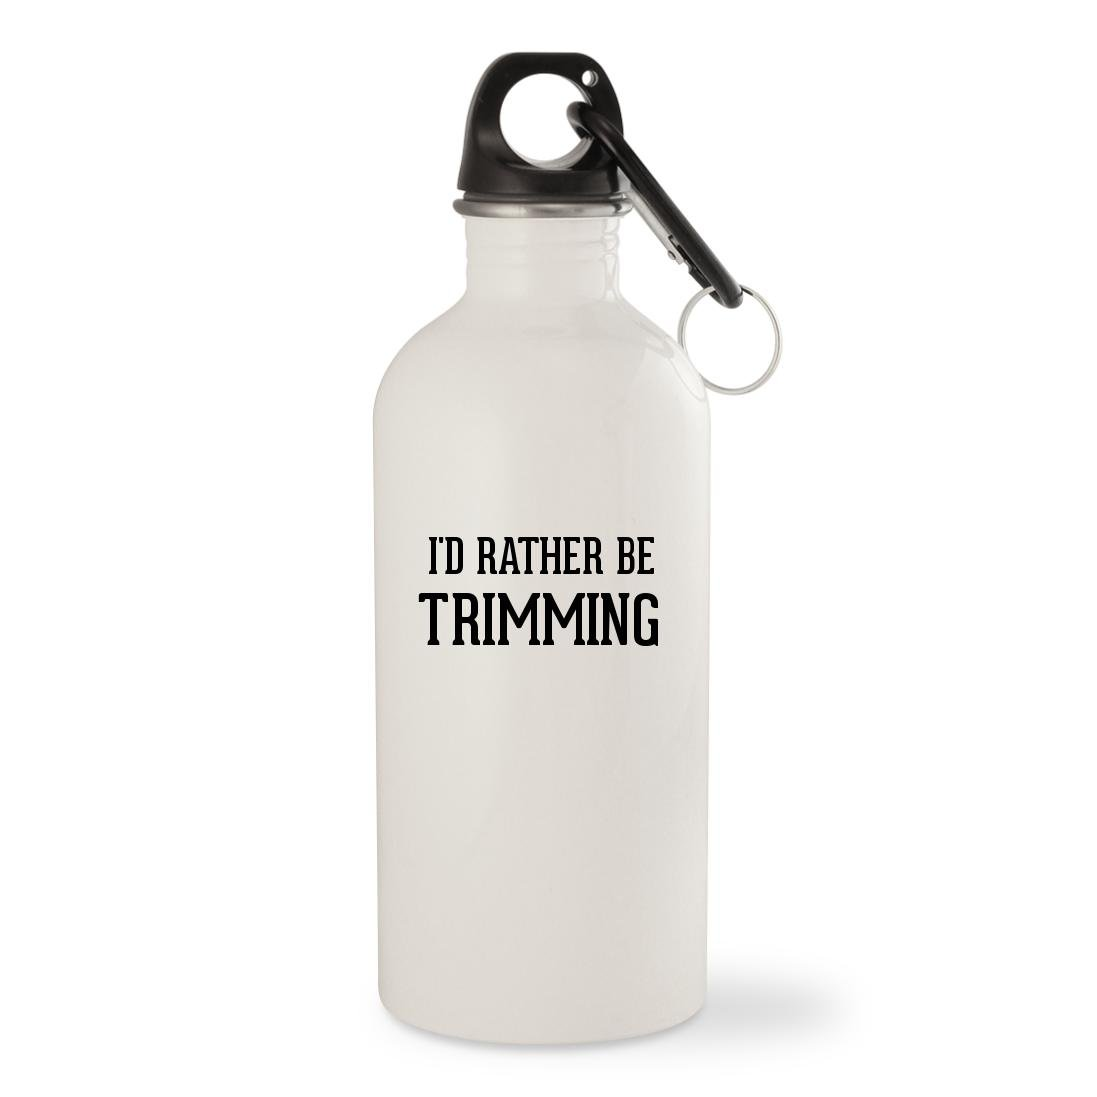 I'd Rather Be TRIMMING - White 20oz Stainless Steel Water Bottle with Carabiner